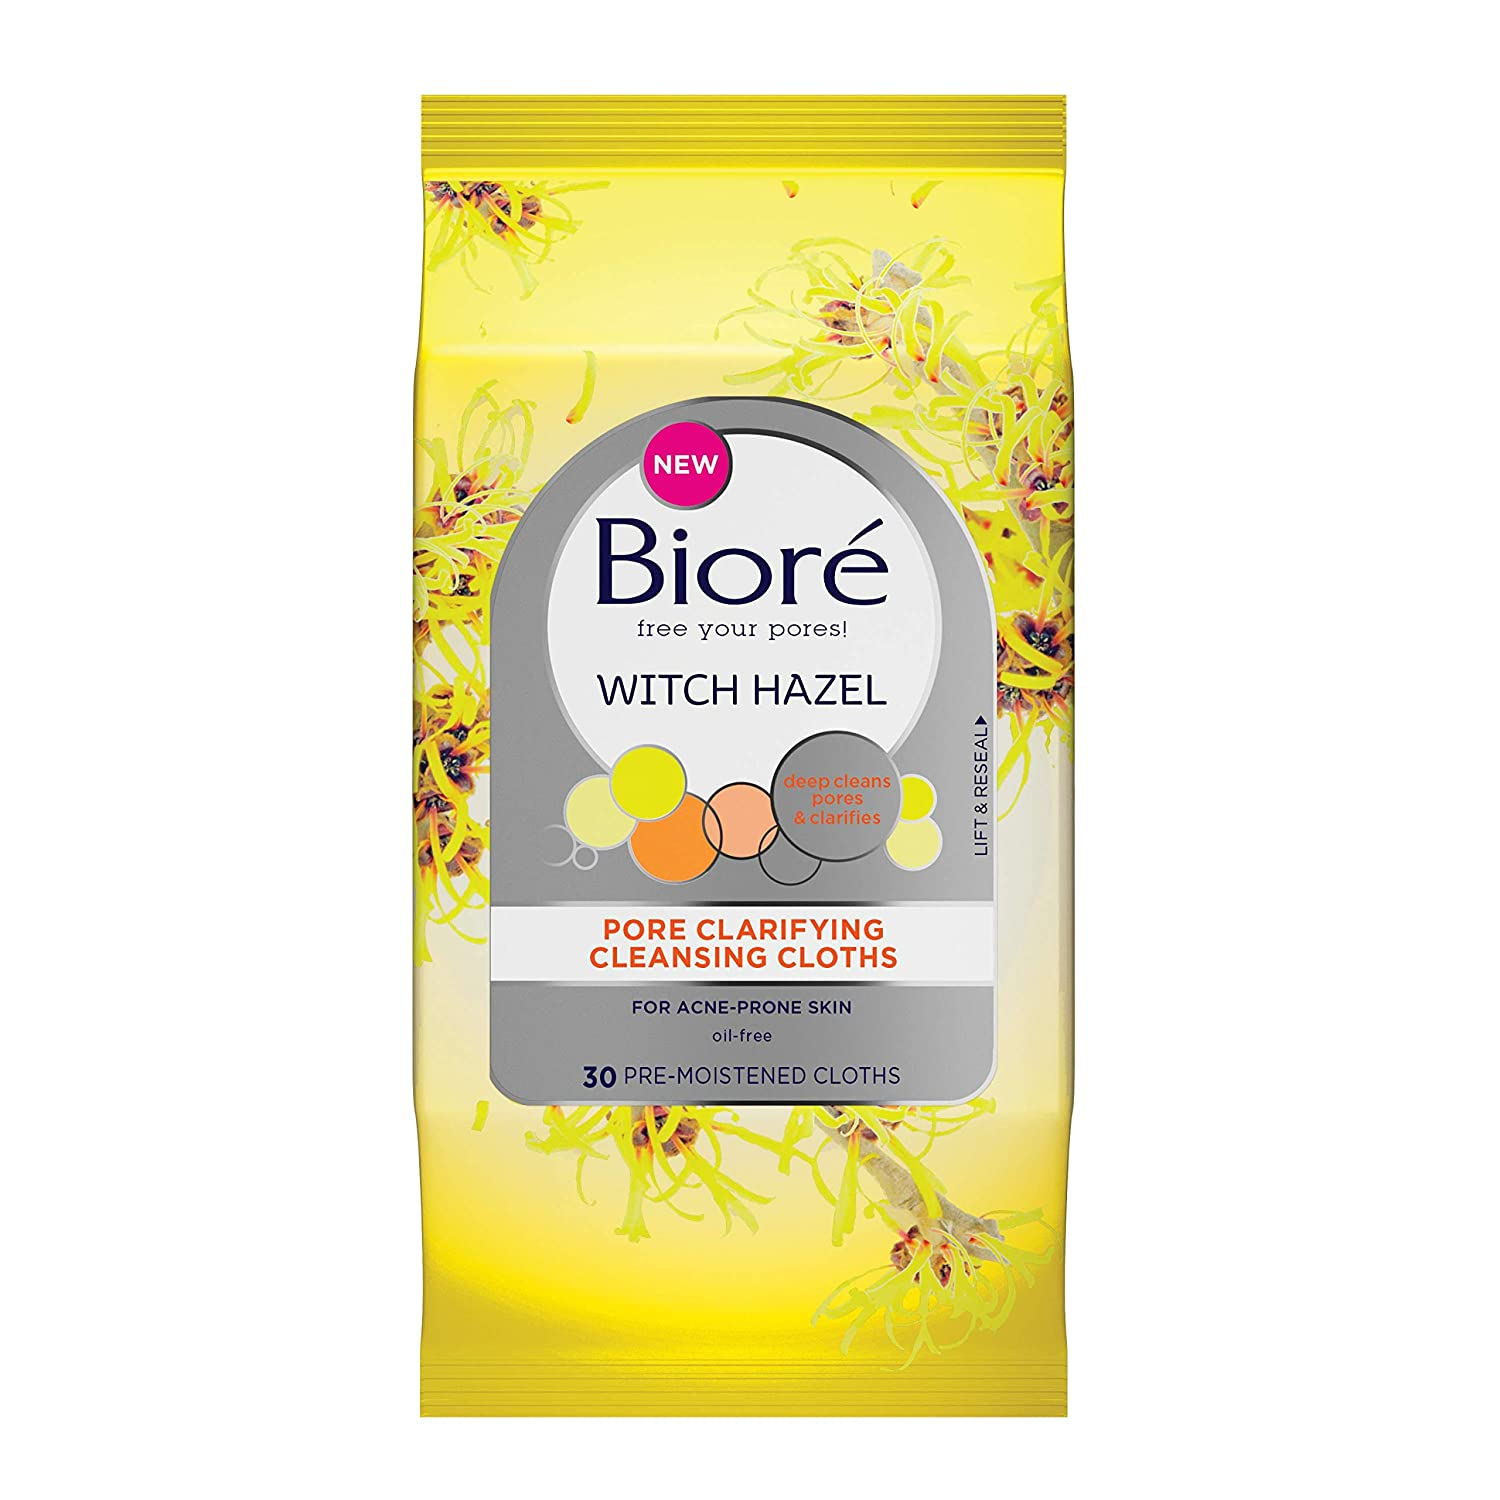 Biore Witch Hazel Pore Clarifying Cleansing Cloths 30 Ea, 30 Count